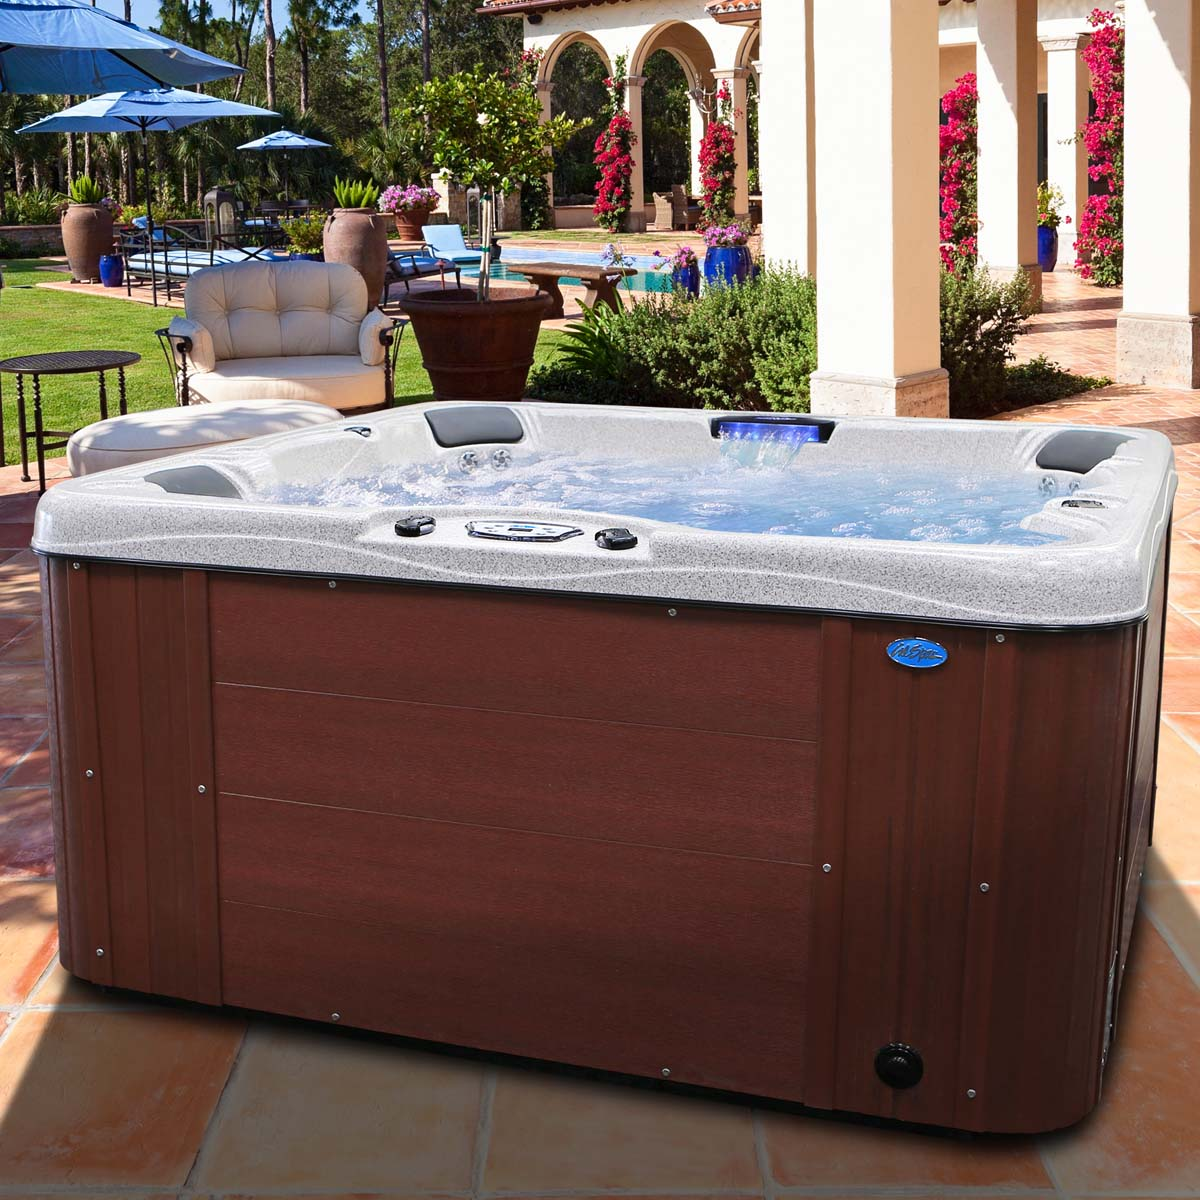 Cal spas hot tubs and bbq islands for sale at round calspas sciox Image collections